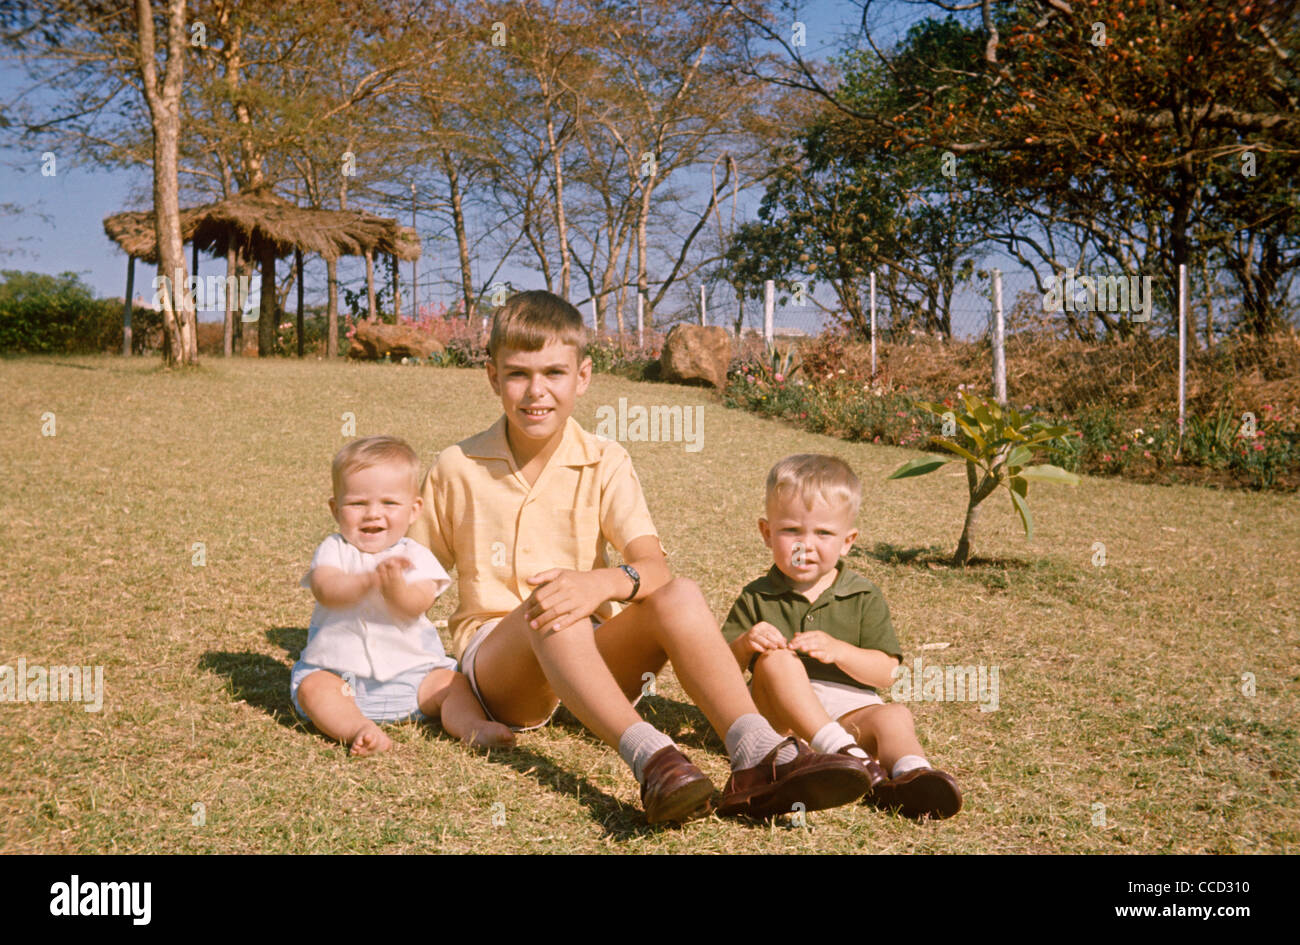 An older uncle with his two nephews sit on tropical grass in the family African garden in 1970. - Stock Image